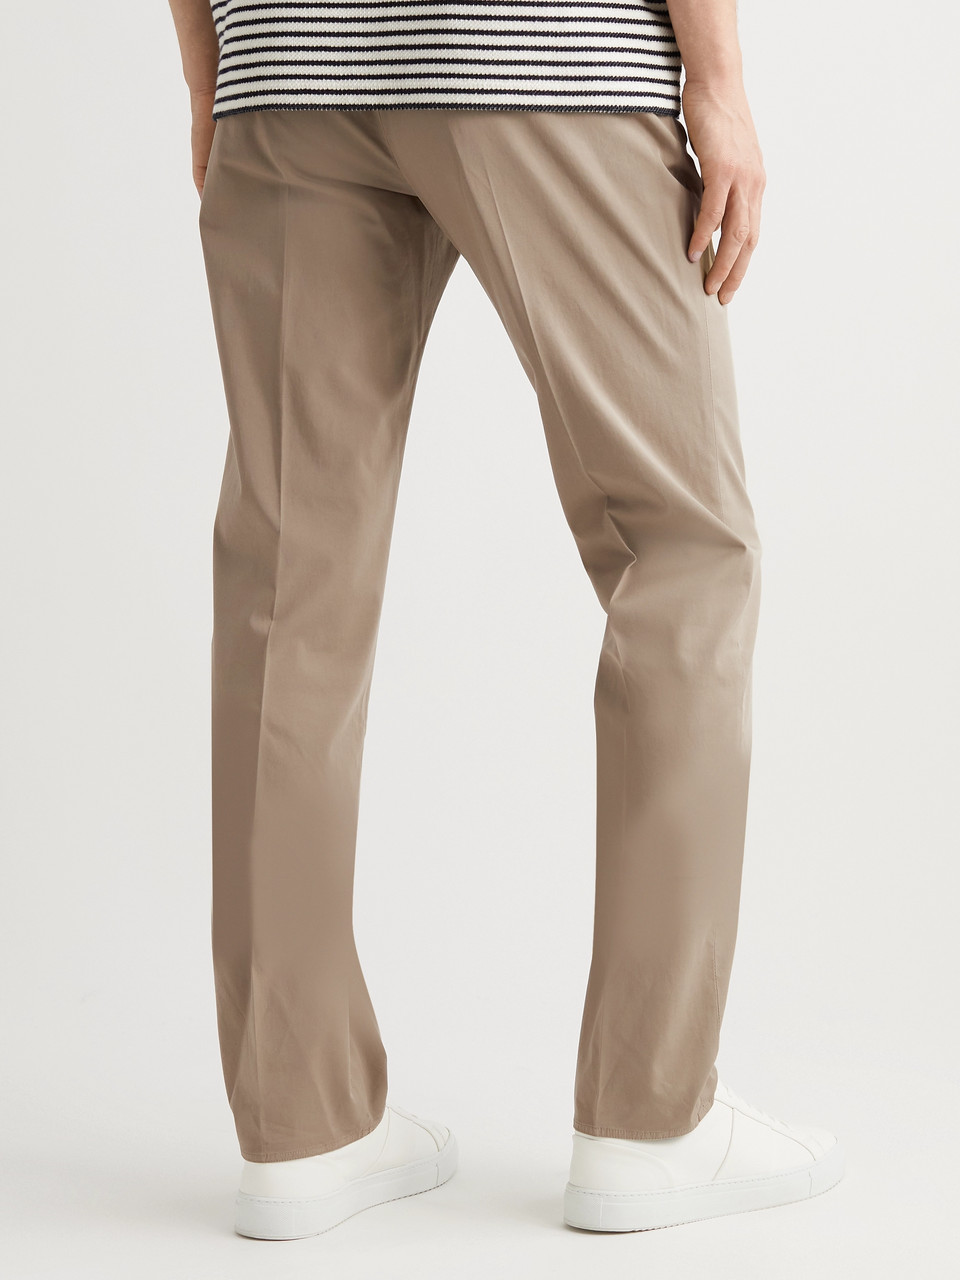 Incotex Four Season Relaxed-Fit Cotton-Blend Chinos